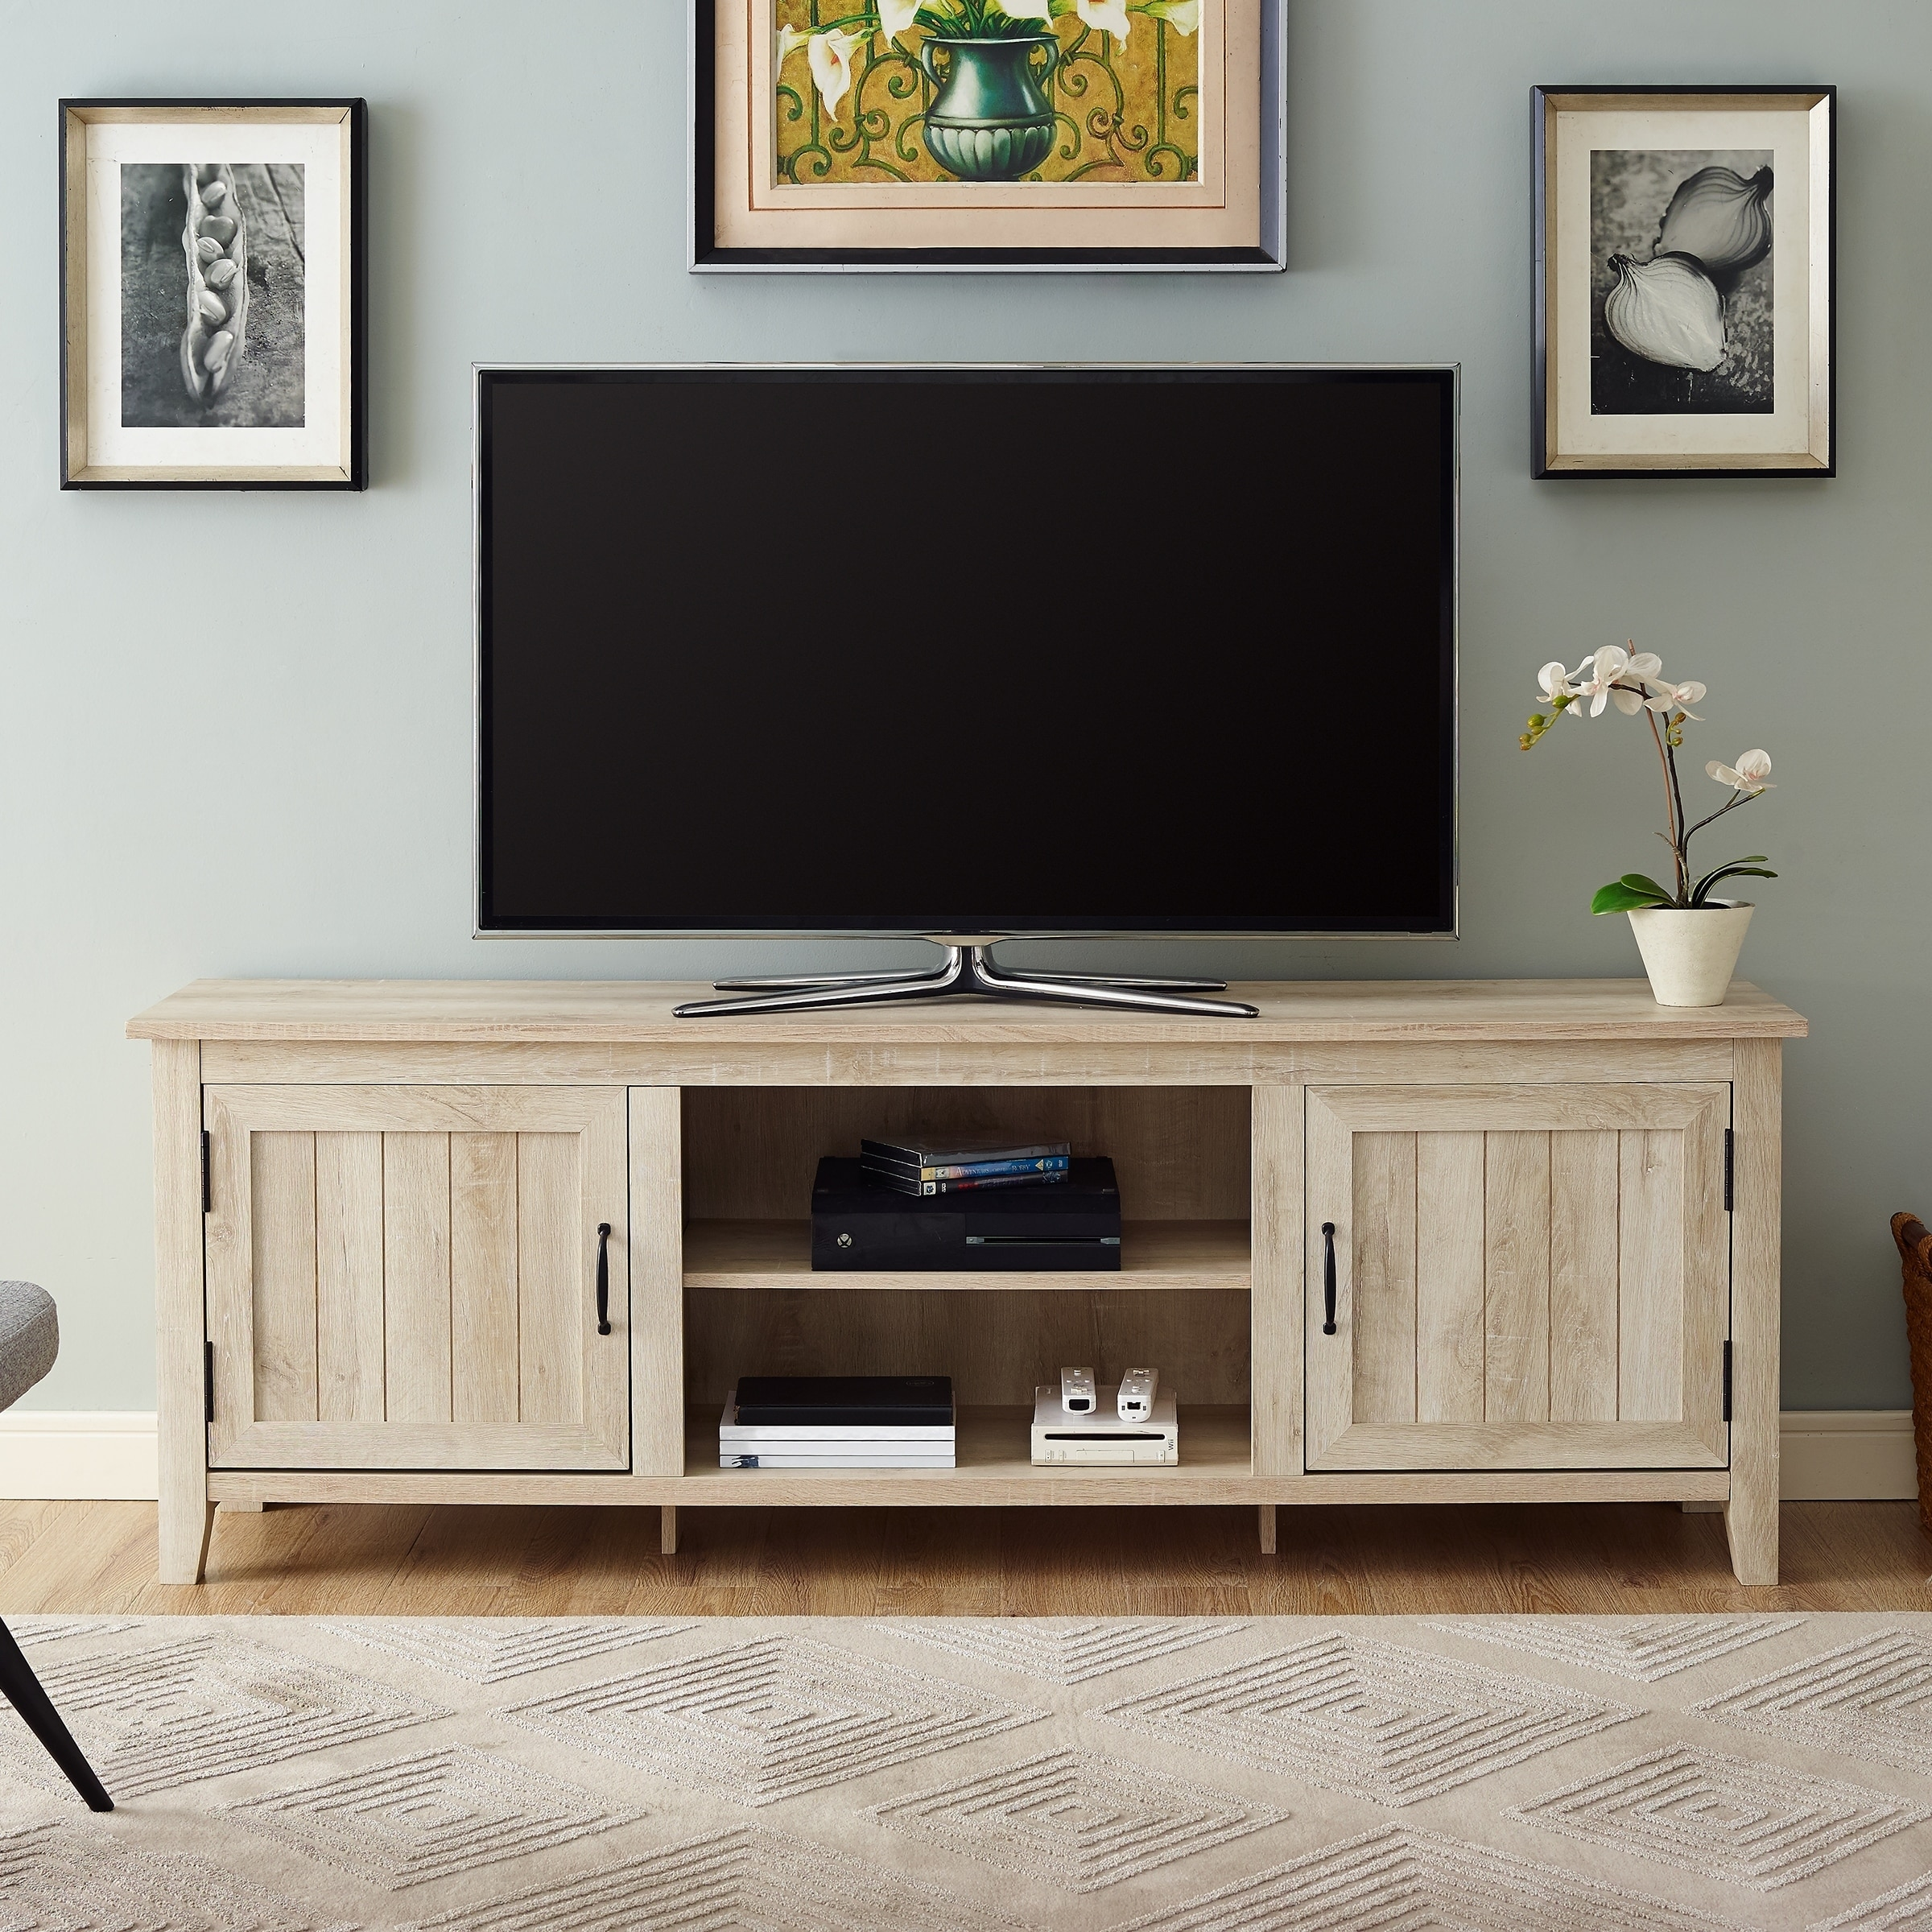 buy tv stands entertainment centers online at overstockcom our best living room furniture deals - Entertainment Center With Bookshelves